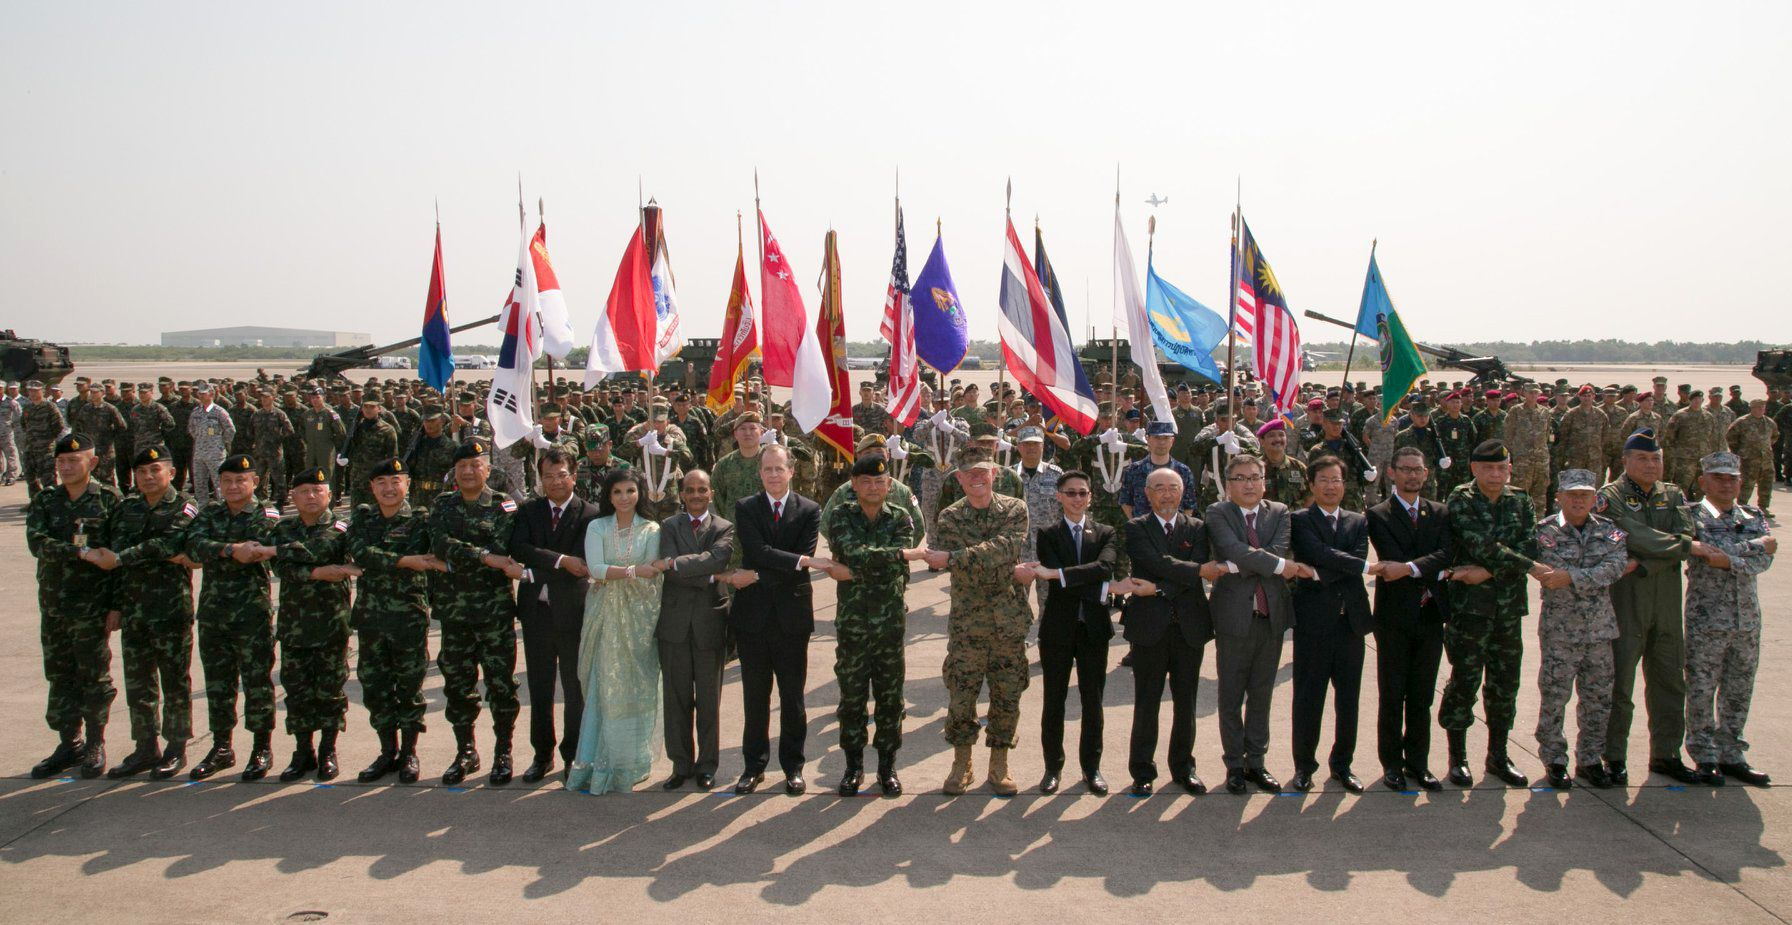 Ambassador Glyn Davies presided over the February 13 opening ceremony for Cobra Gold 2018